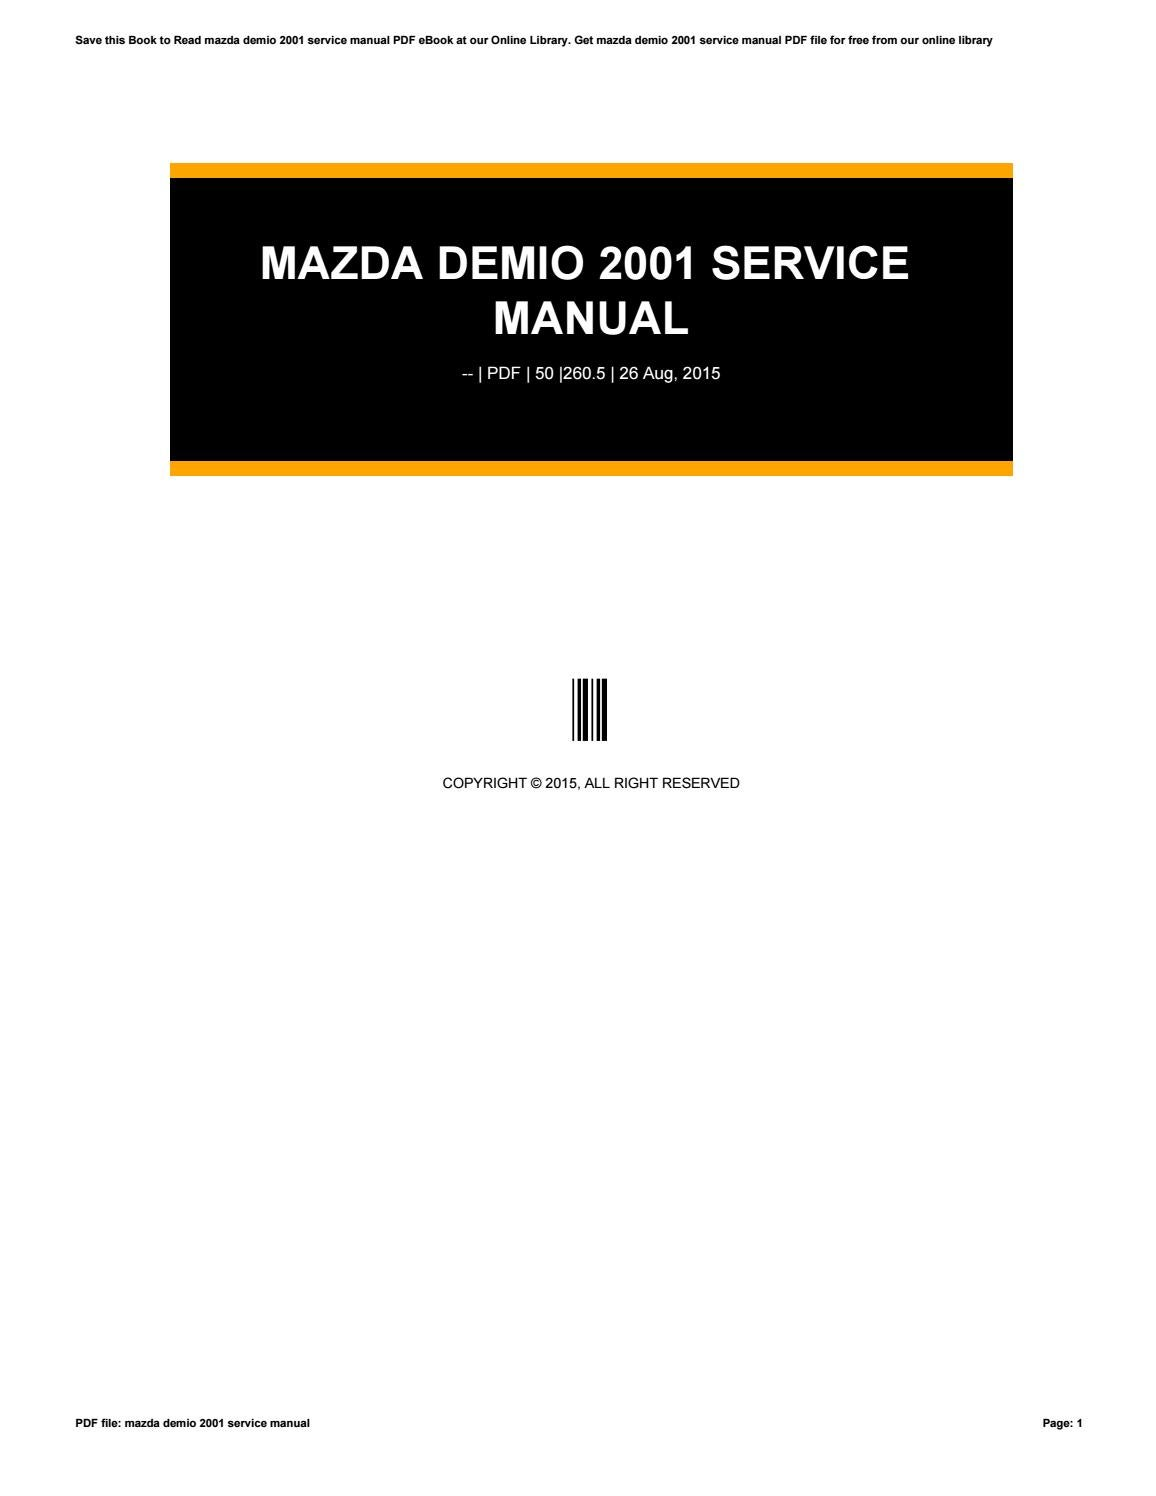 Mazda e2015 repair manual ebook array mazda demio 2001 service manual by toon95 issuu rh issuu fandeluxe Images